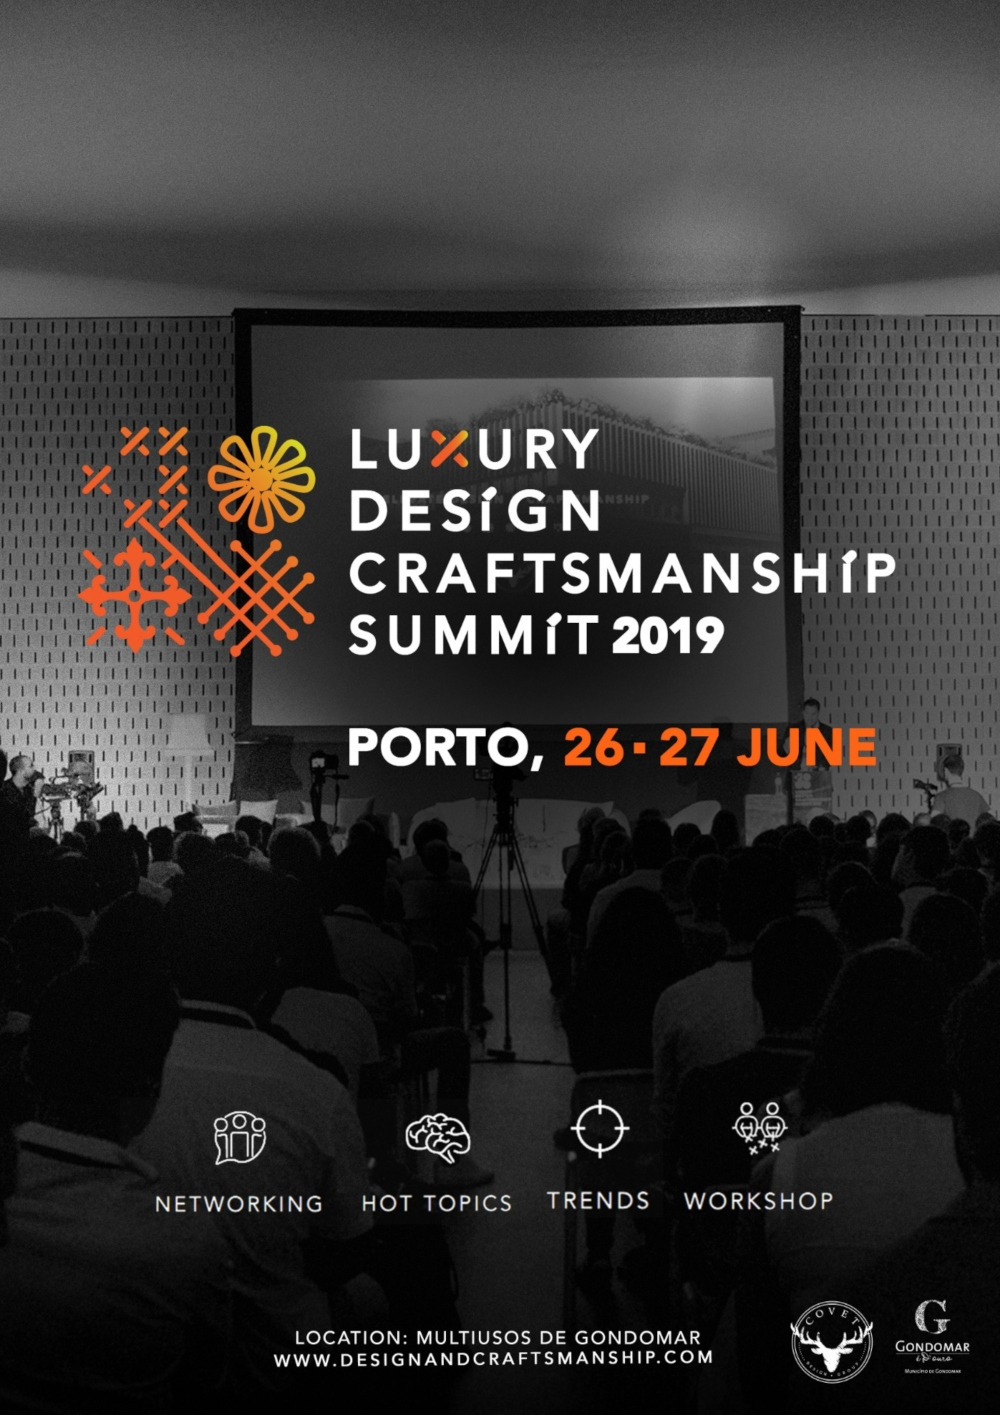 All About The Luxury Design And Craftsmanship Summit 2019 reasons to visit porto 5 Reasons To Visit Porto Celebrating Craftsmanship The Luxury DesignCraftsmanship Summit 2019 2 reasons to visit porto 5 Reasons To Visit Porto Celebrating Craftsmanship The Luxury DesignCraftsmanship Summit 2019 2